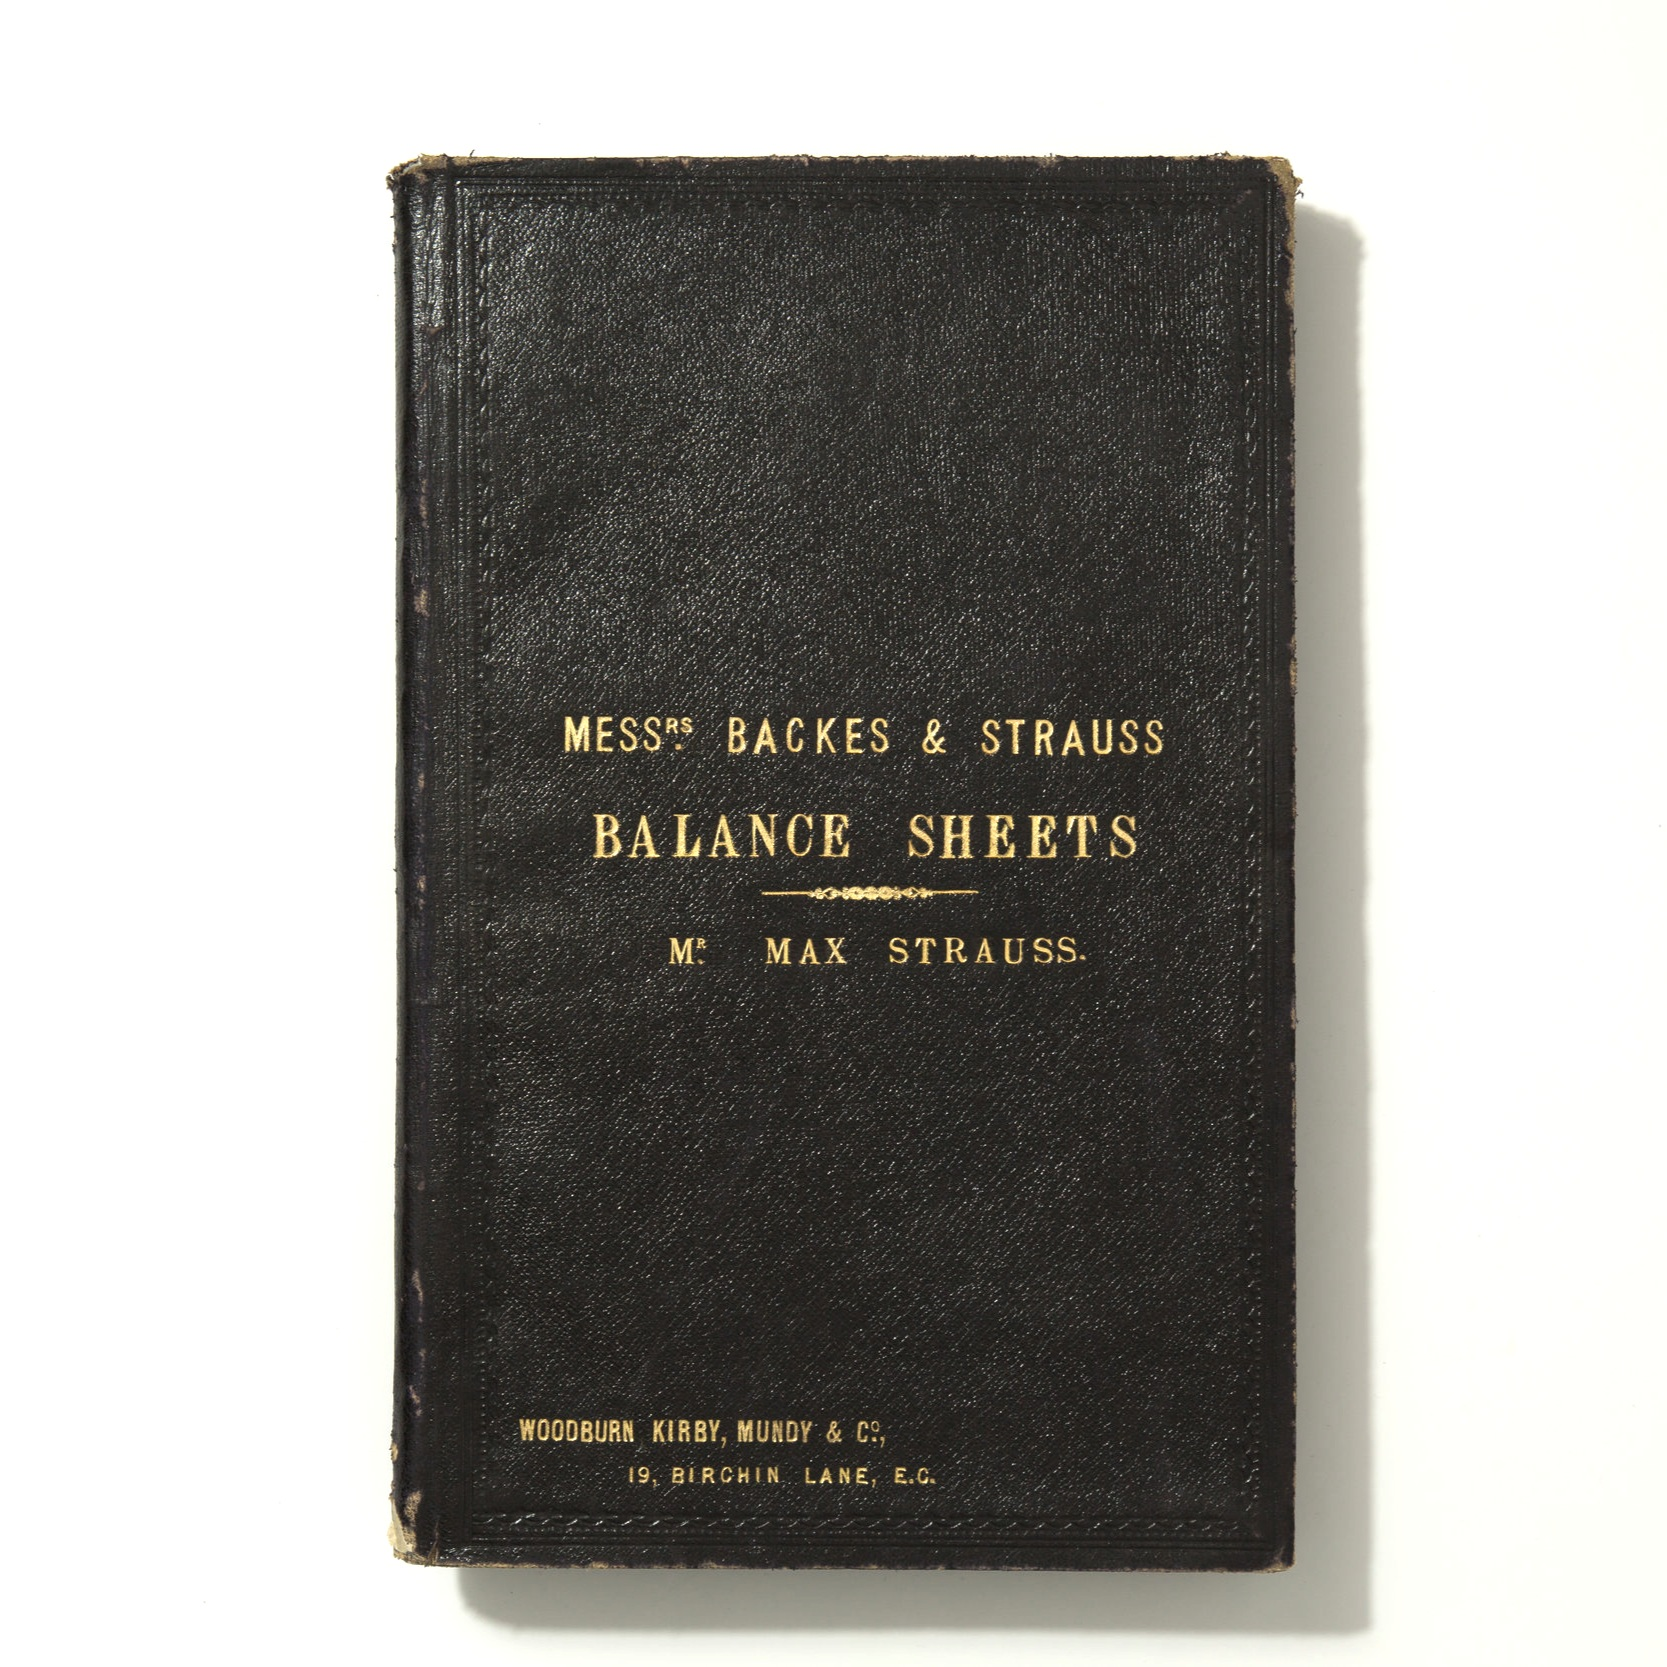 Backes & Strauss Balance Sheets by Max Strauss